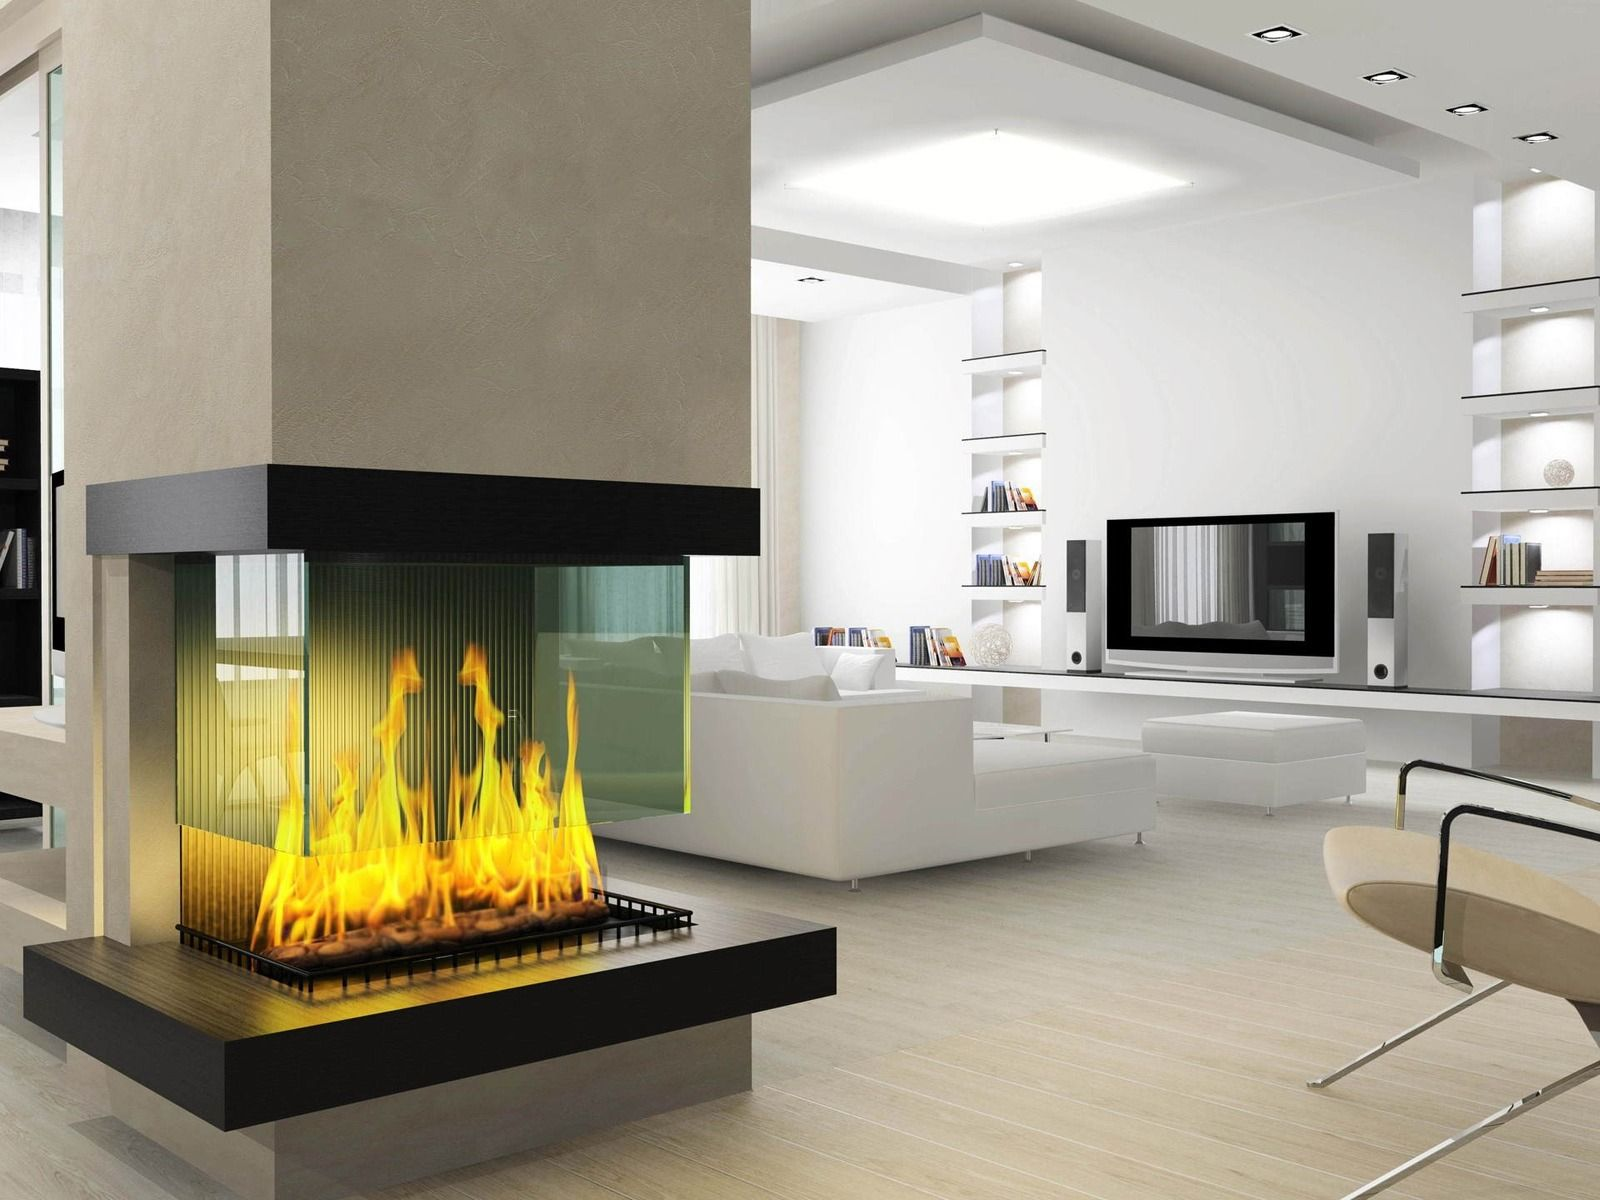 Open fireplace design stands center stage in this modern home ...